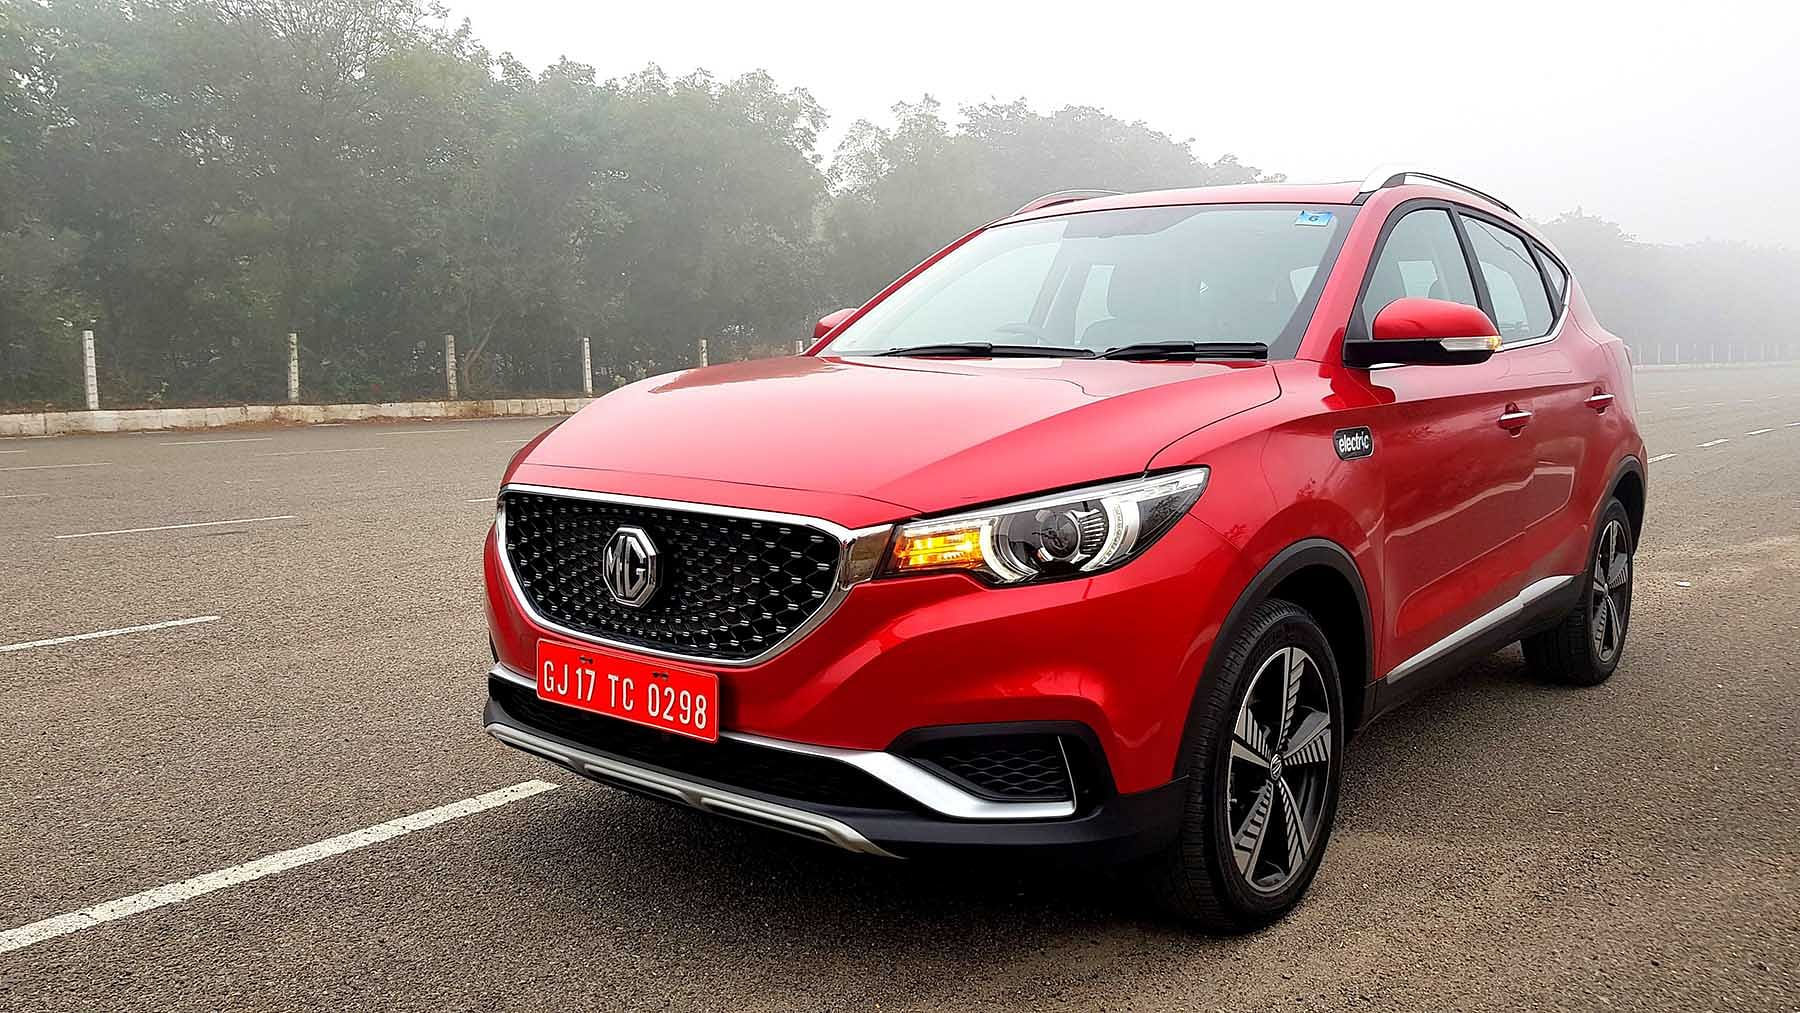 MG Motors Launches ZS EV in India, Prices Start from Rs 20.88 Lakh